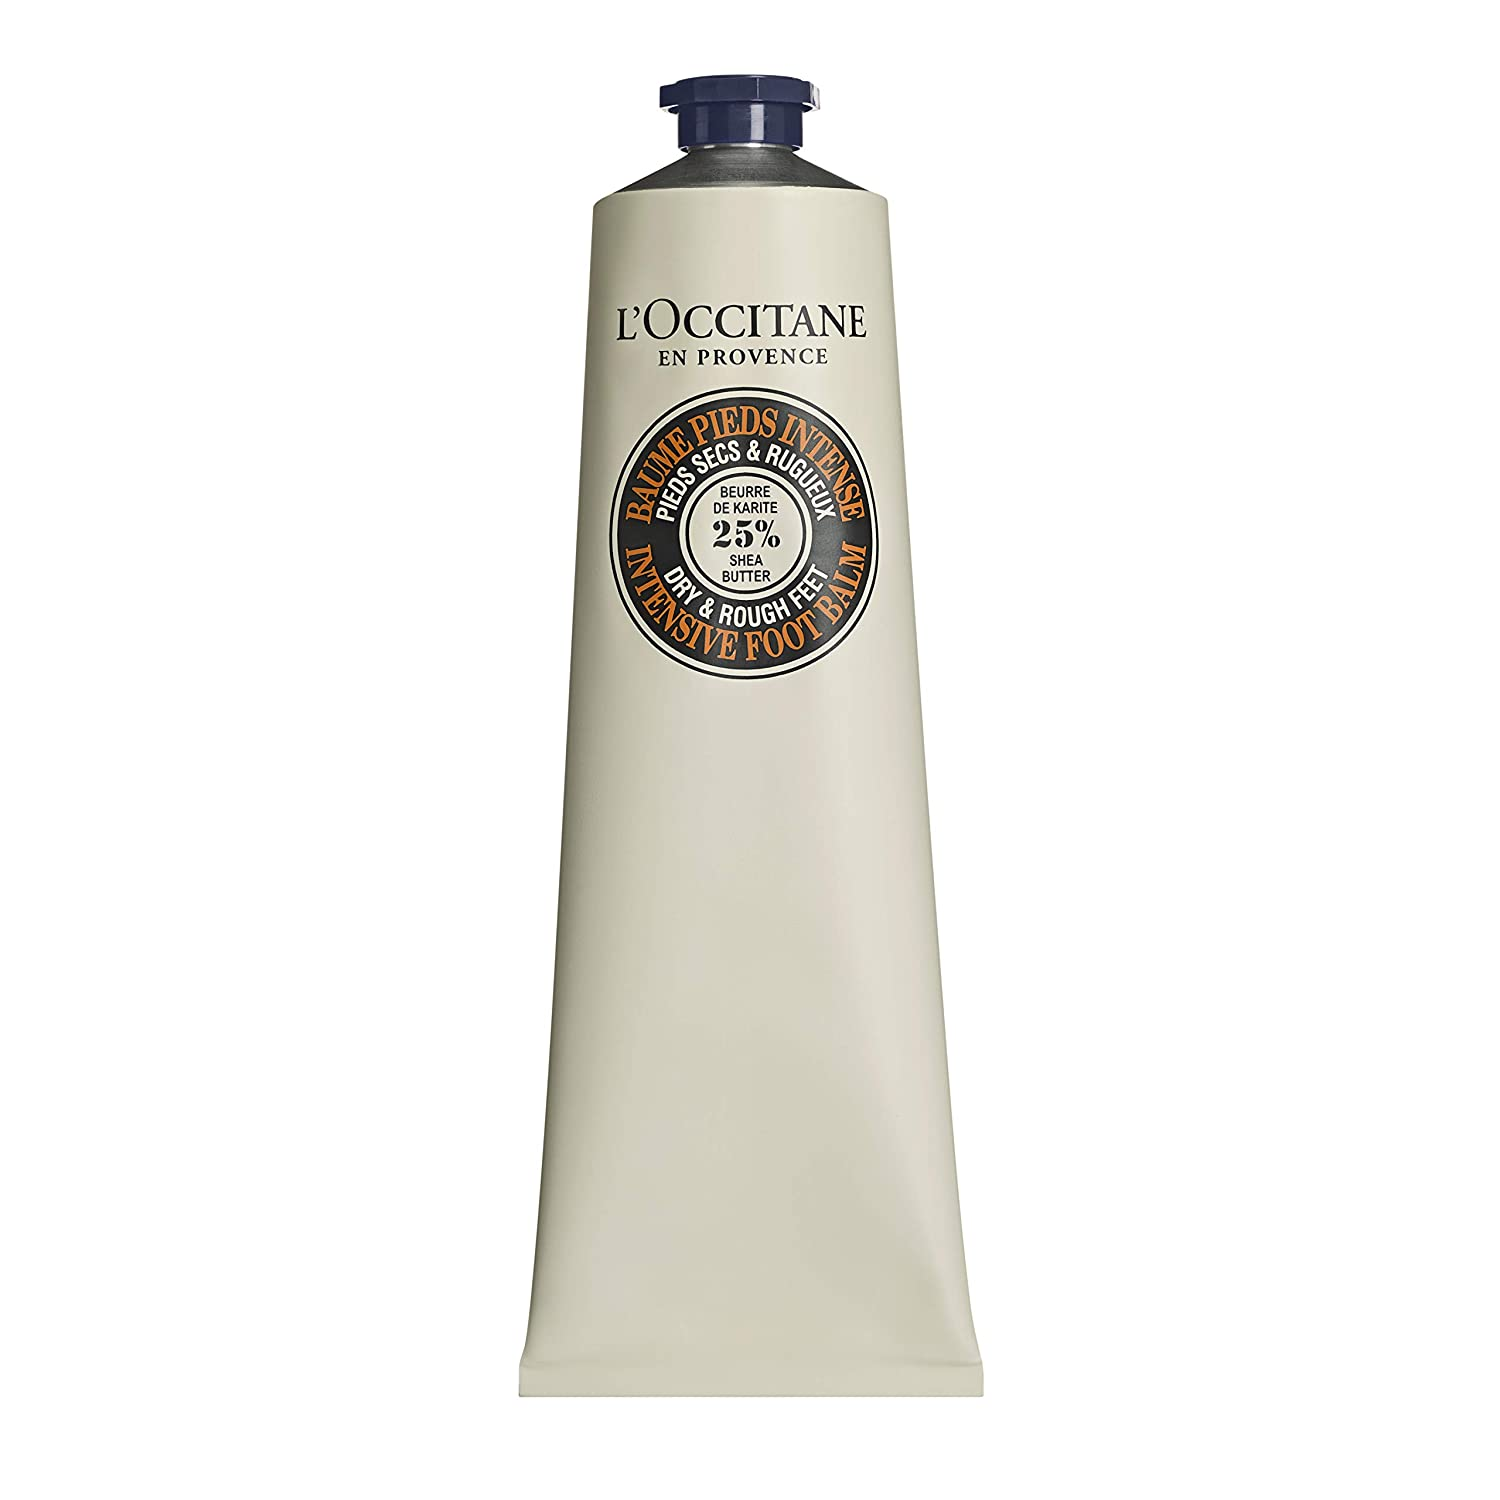 L'Occitane Shea Butter Intensive Foot Balm with 25% Shea Butter and Allantoin for Dry to Very Dry Feet, Net Wt. 5.3 oz.